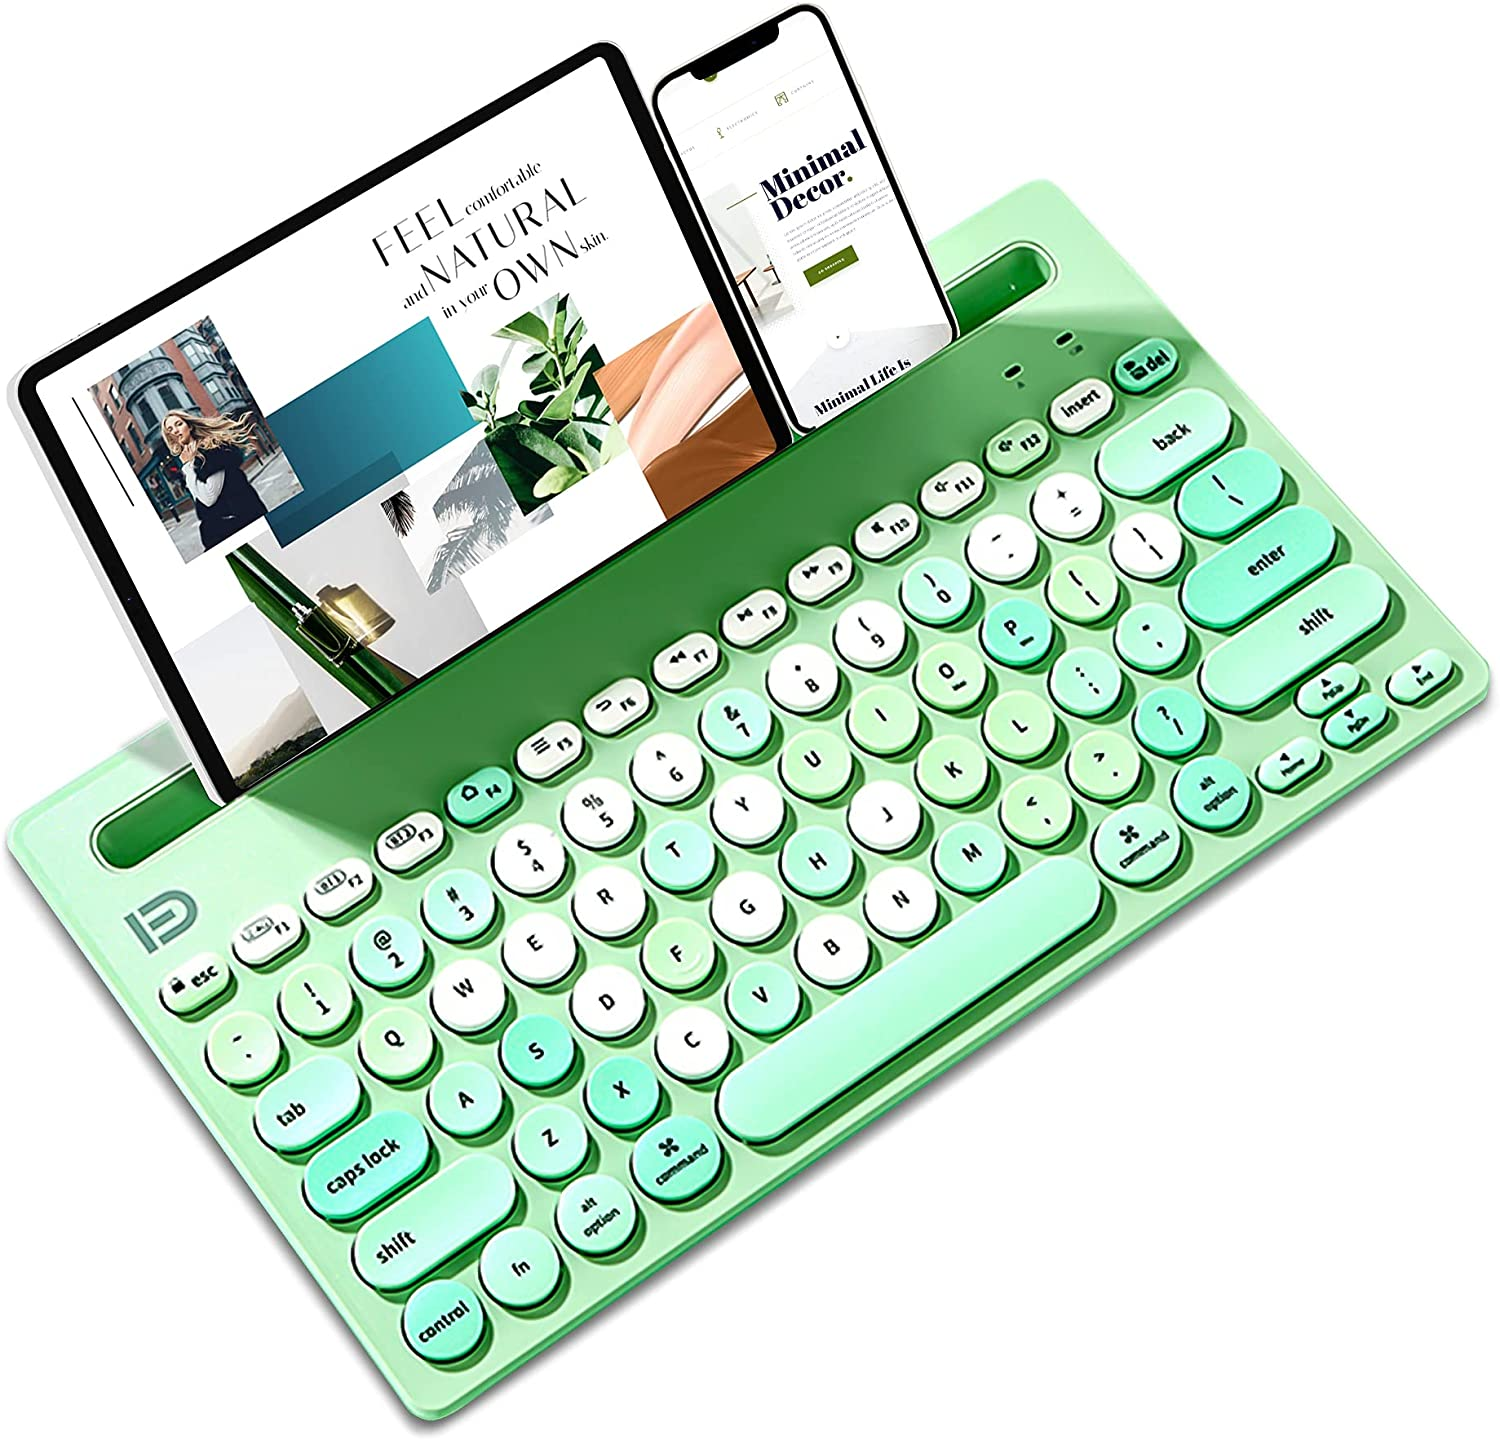 Multi-Device Keyboard, 2.4Ghz USB Channel,2 Bluetooth Channels Switchable, Built-in Stand Slot, Typewriter Style, 79-Key, Compatible with Desktop/PC/Laptop/iPhone/iPad/Android/iOS/Chrome(Mixed Green)